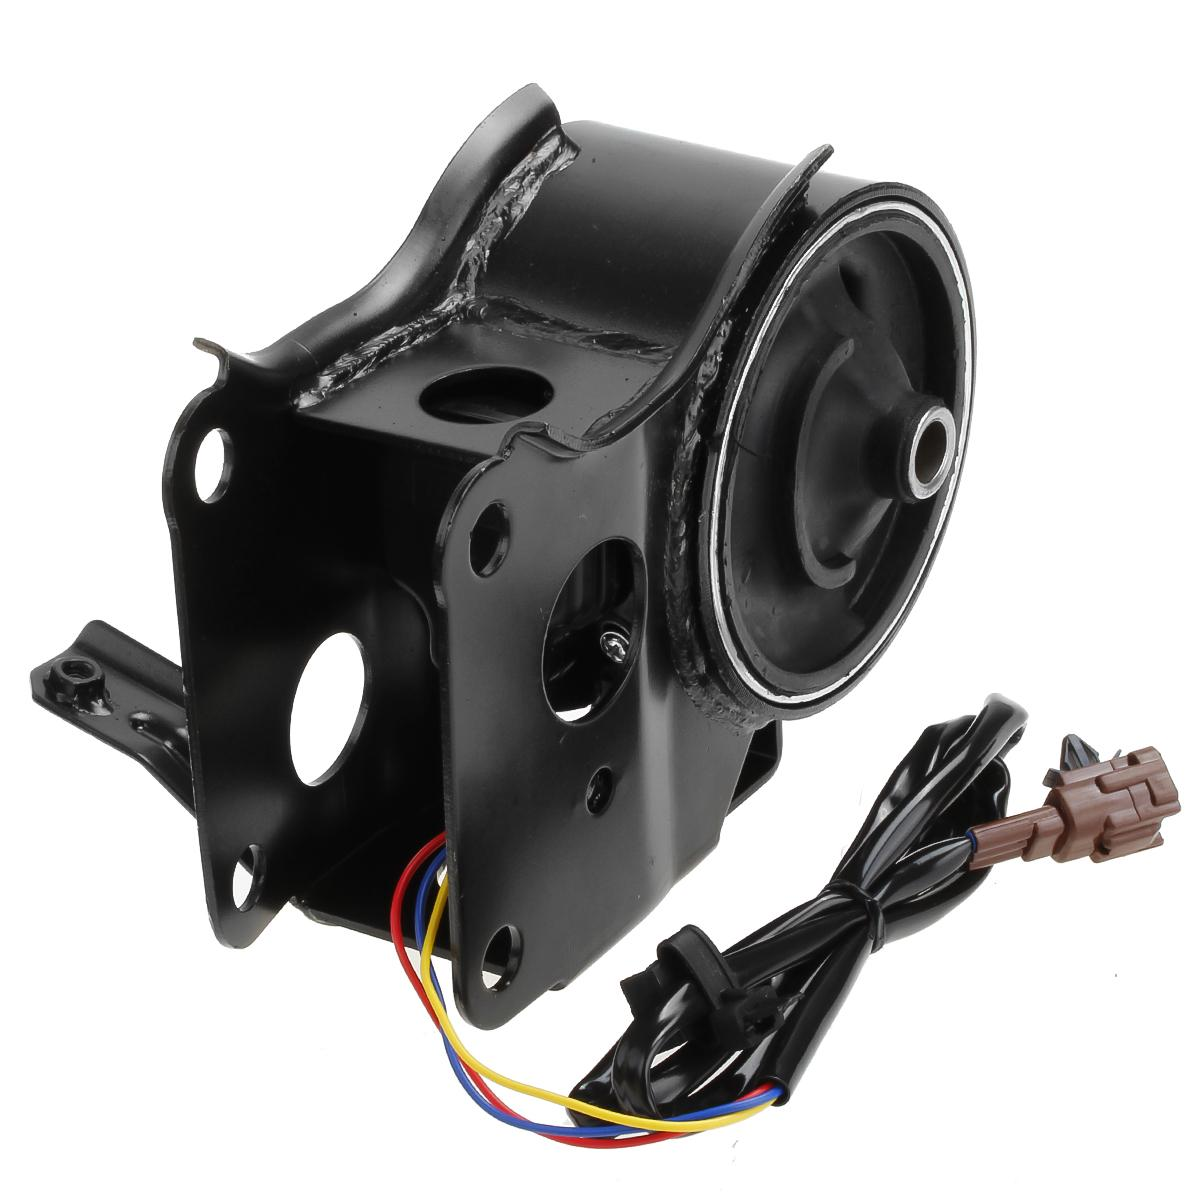 engine motor mount rear for 2002 2006 nissan altima v6 3. Black Bedroom Furniture Sets. Home Design Ideas